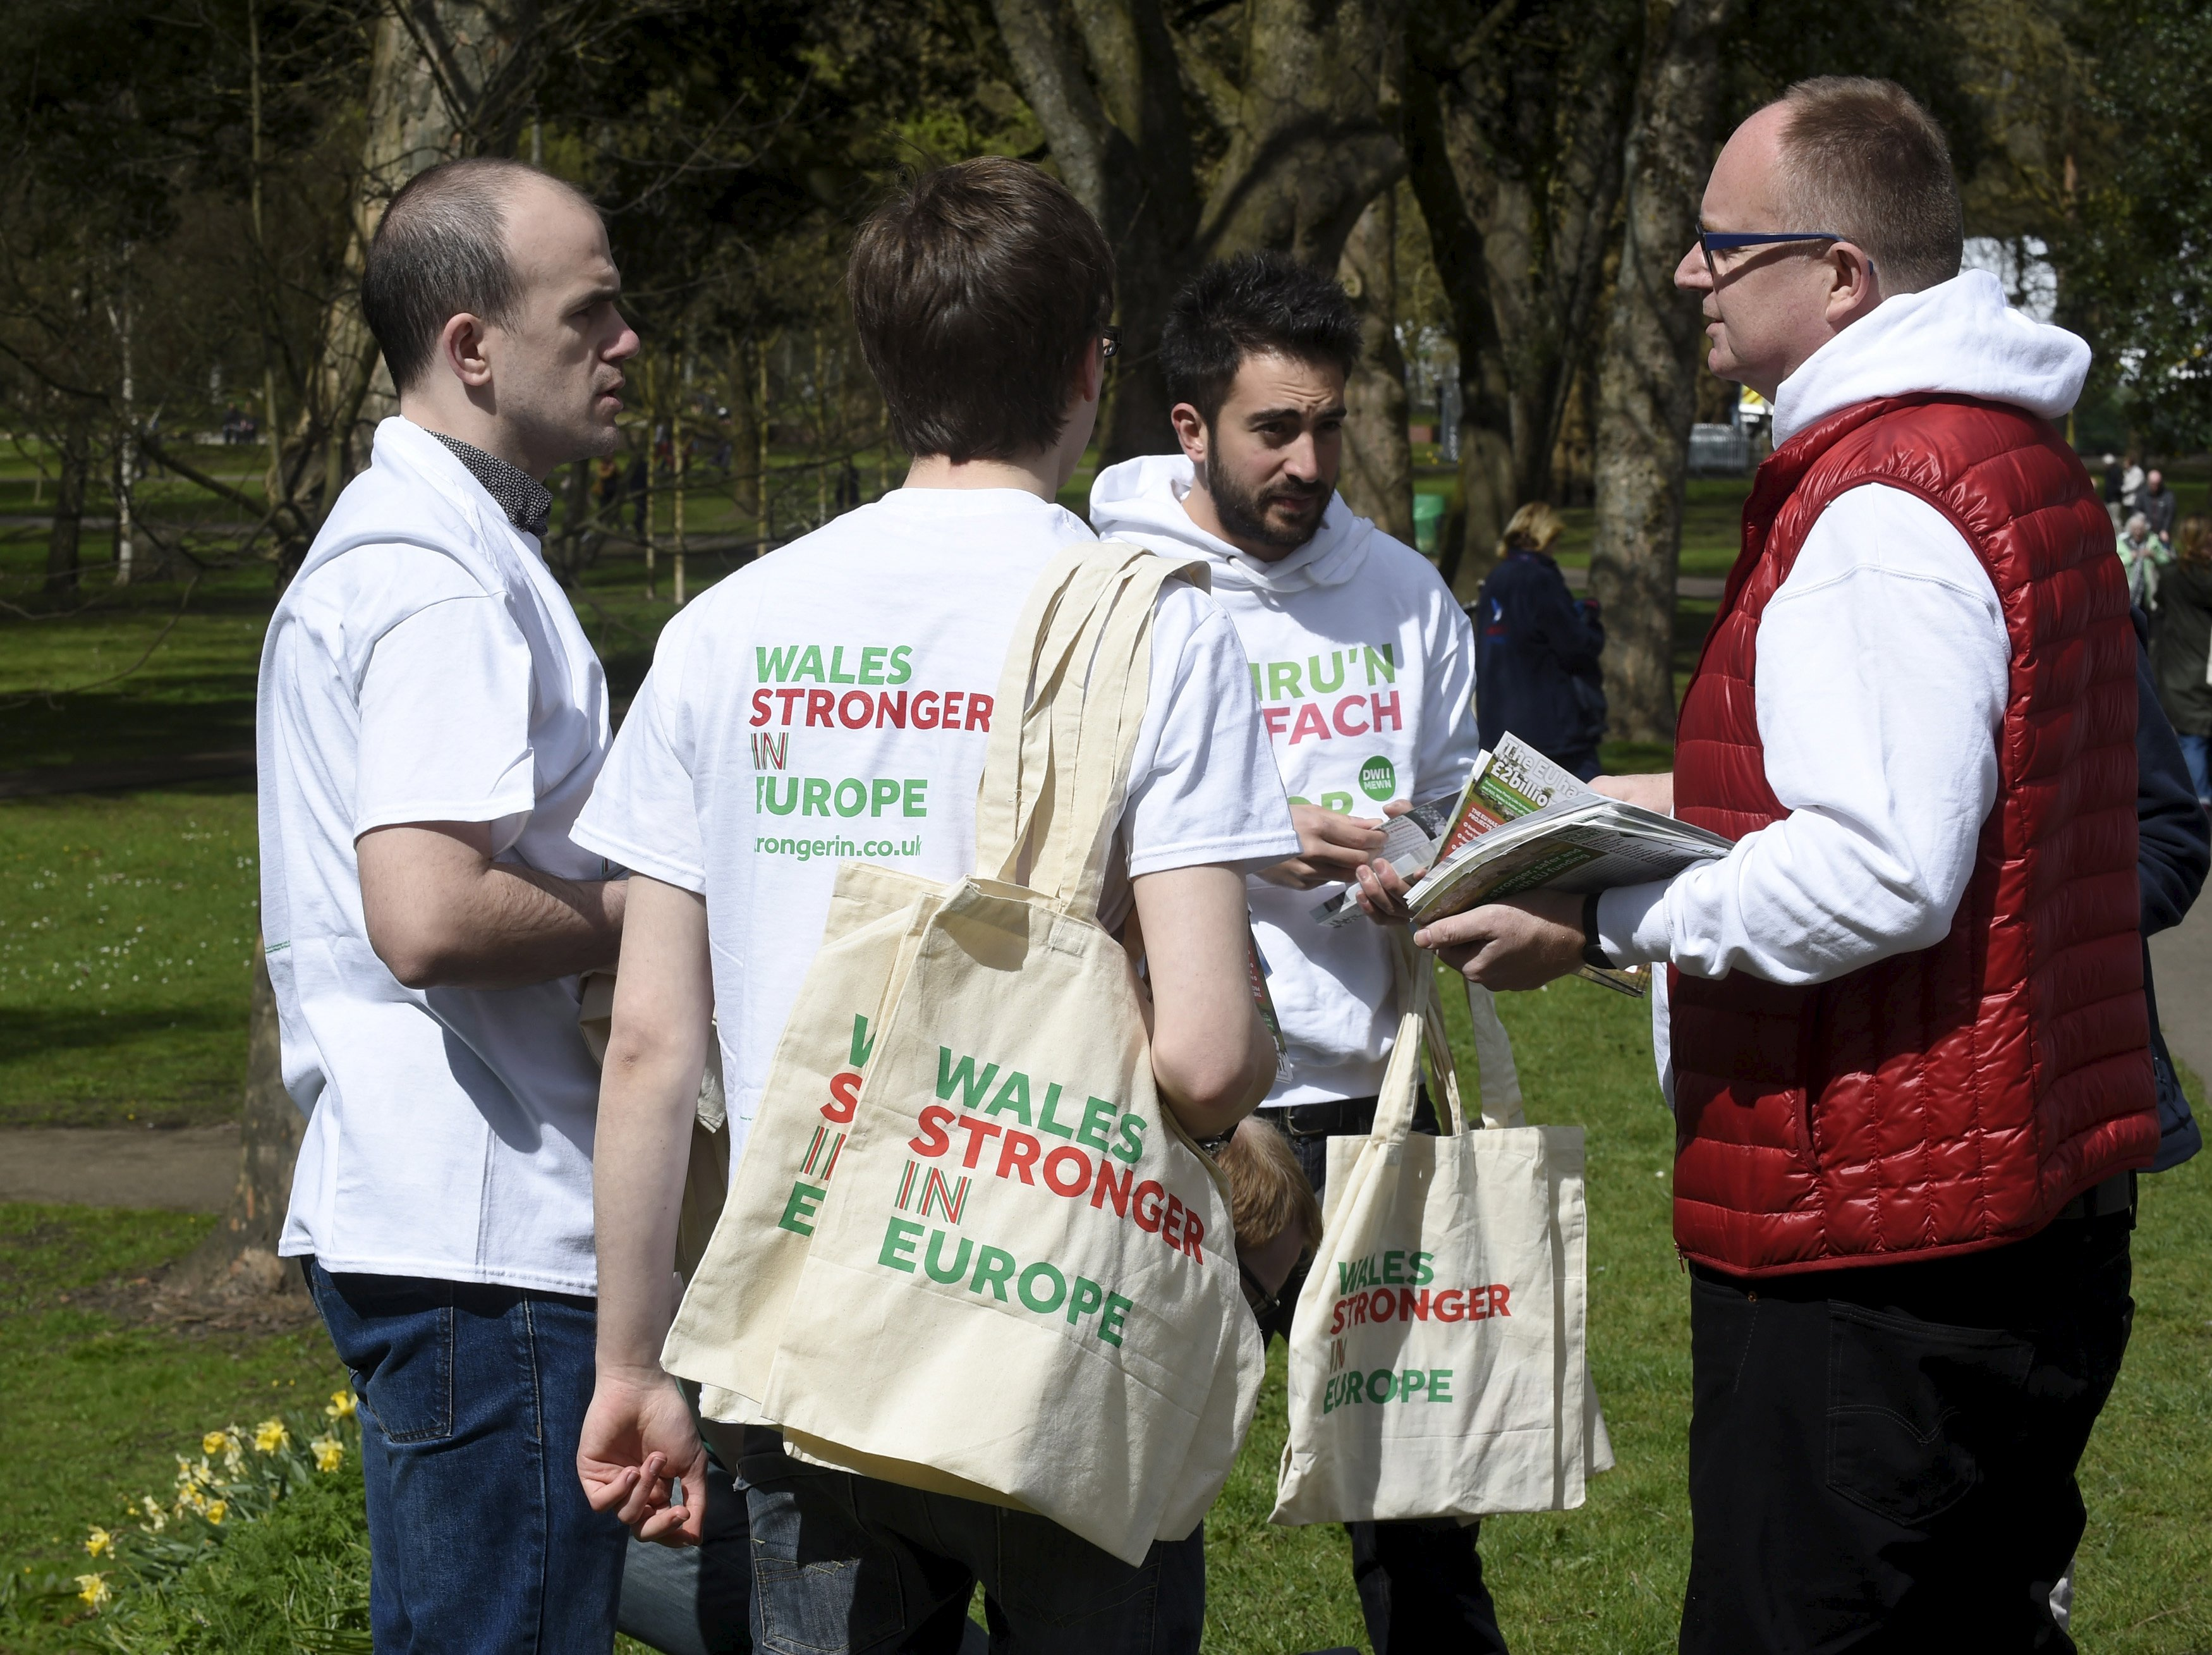 Wales Stronger in Europe supporters prepare to give out free shopping bags and leaflets in Bute Park, Cardiff, South Wales